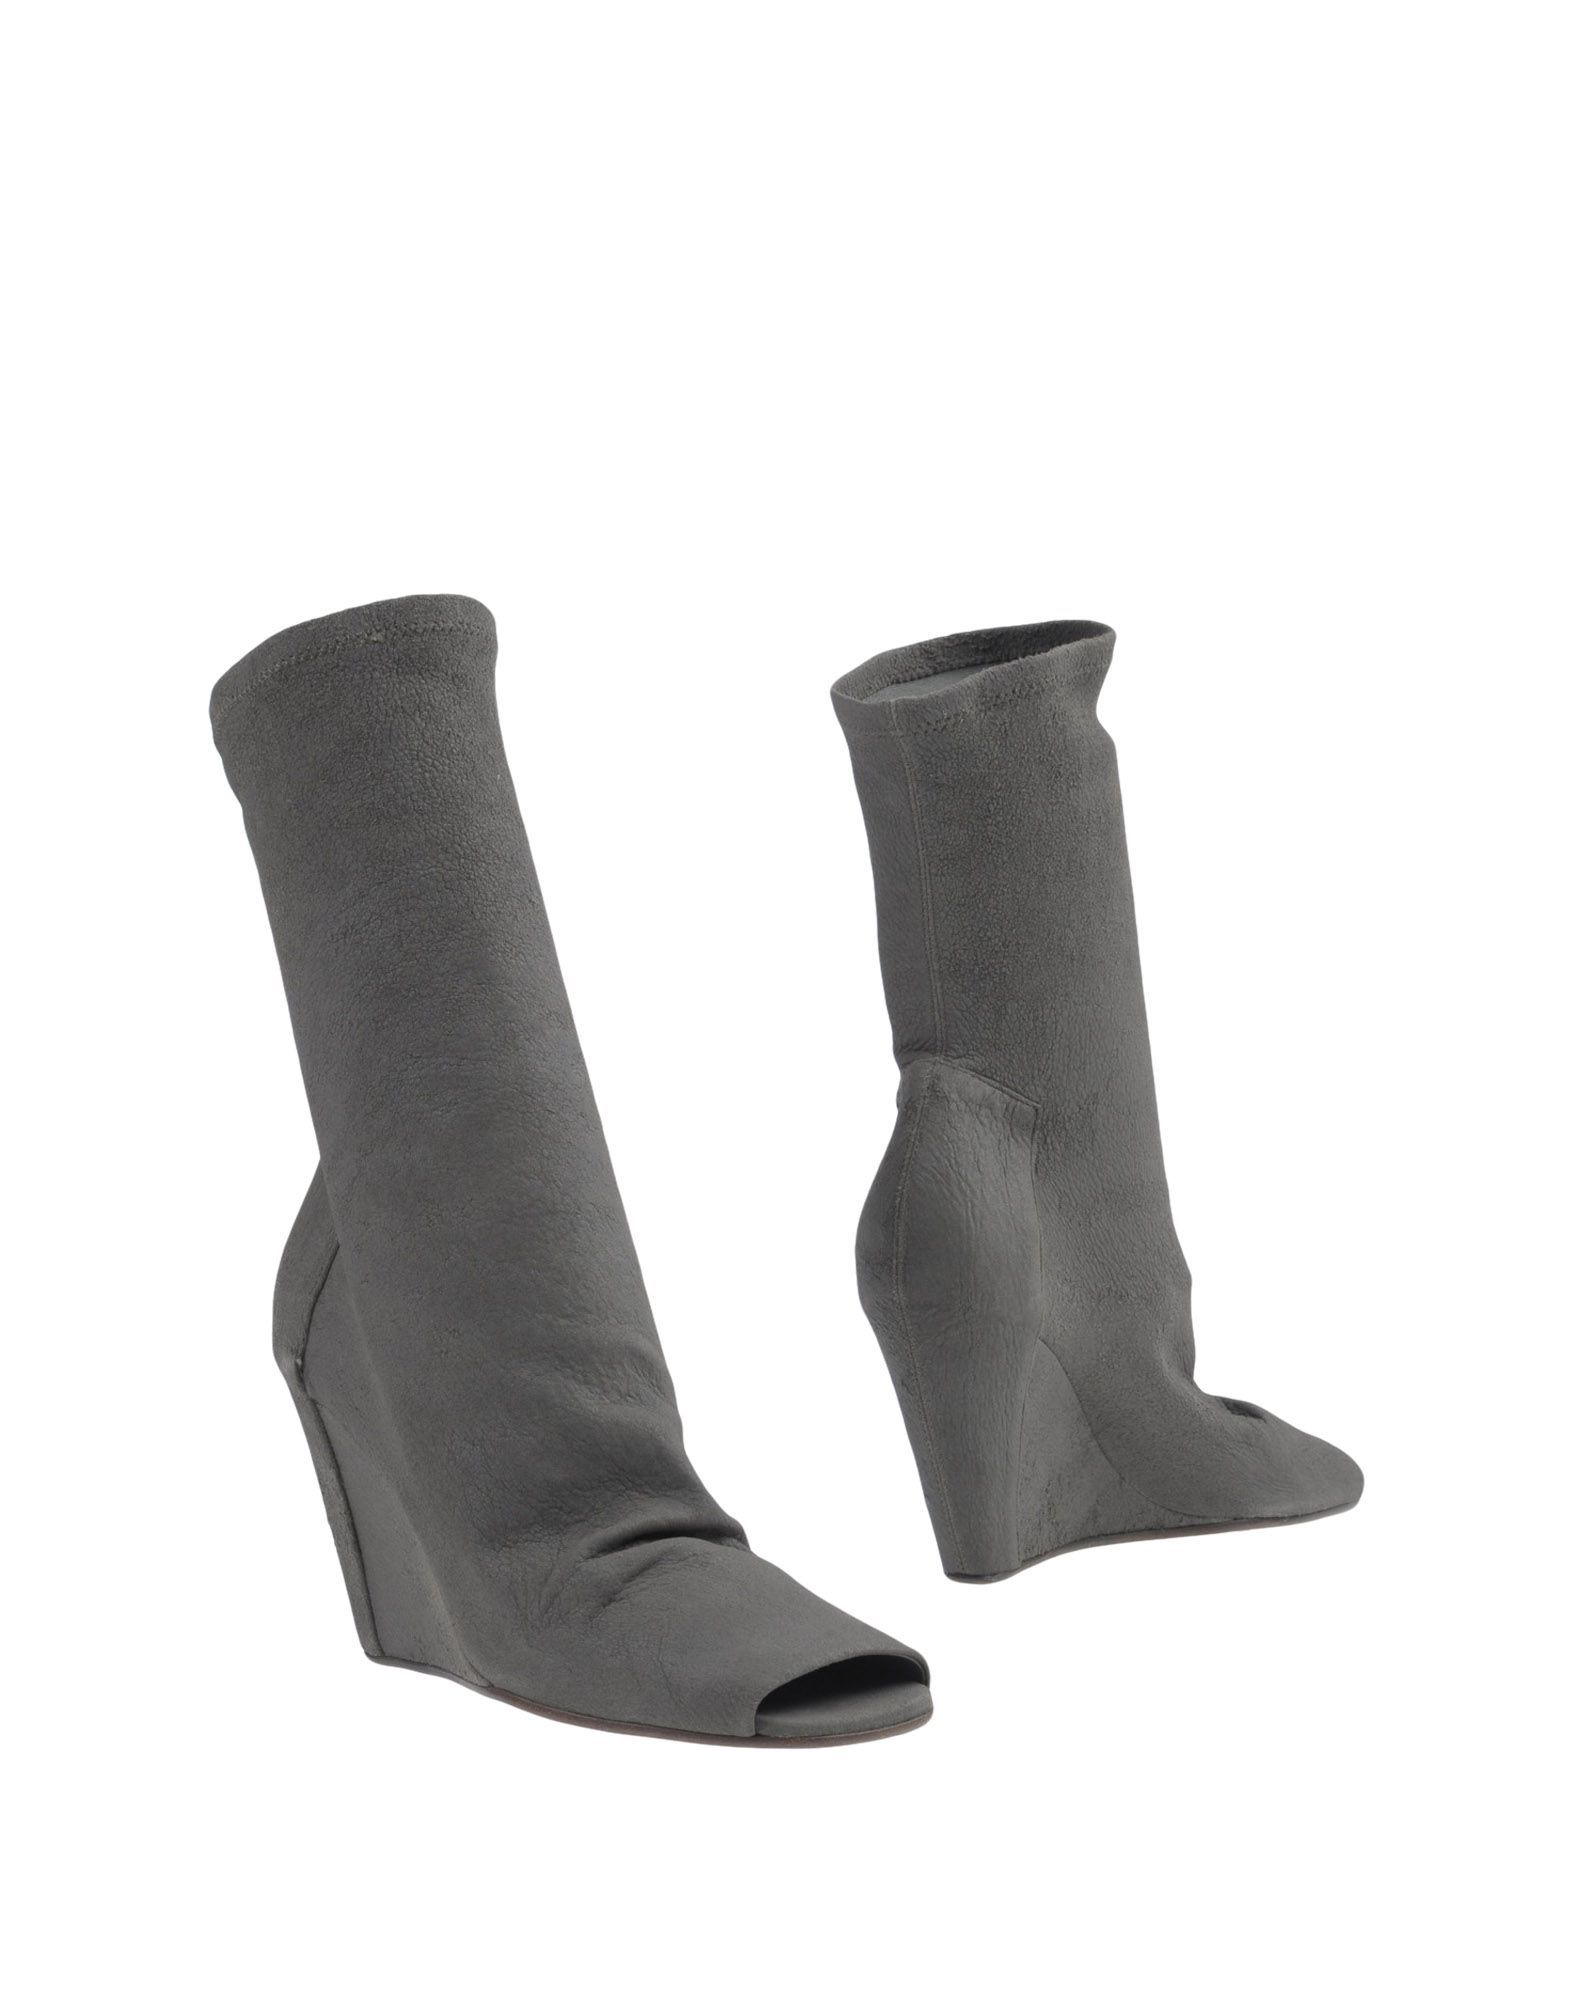 Rick Owens Grey Leather Peeptoe Ankle Boots